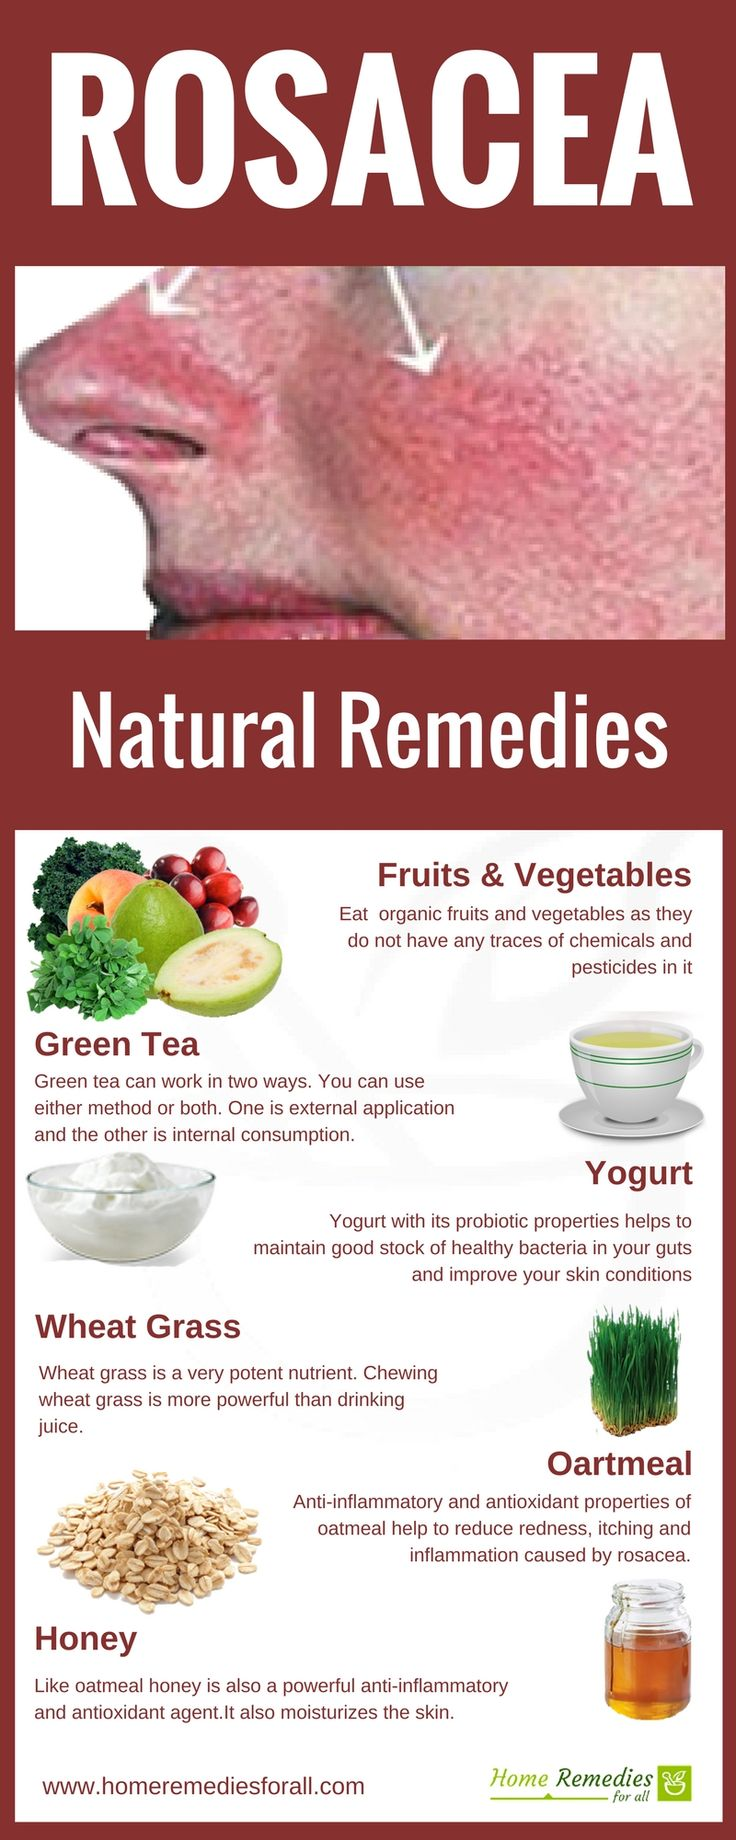 Get rid of Rosacea quickly with the use of these home remedies regularly and get your face free of itch and pain.